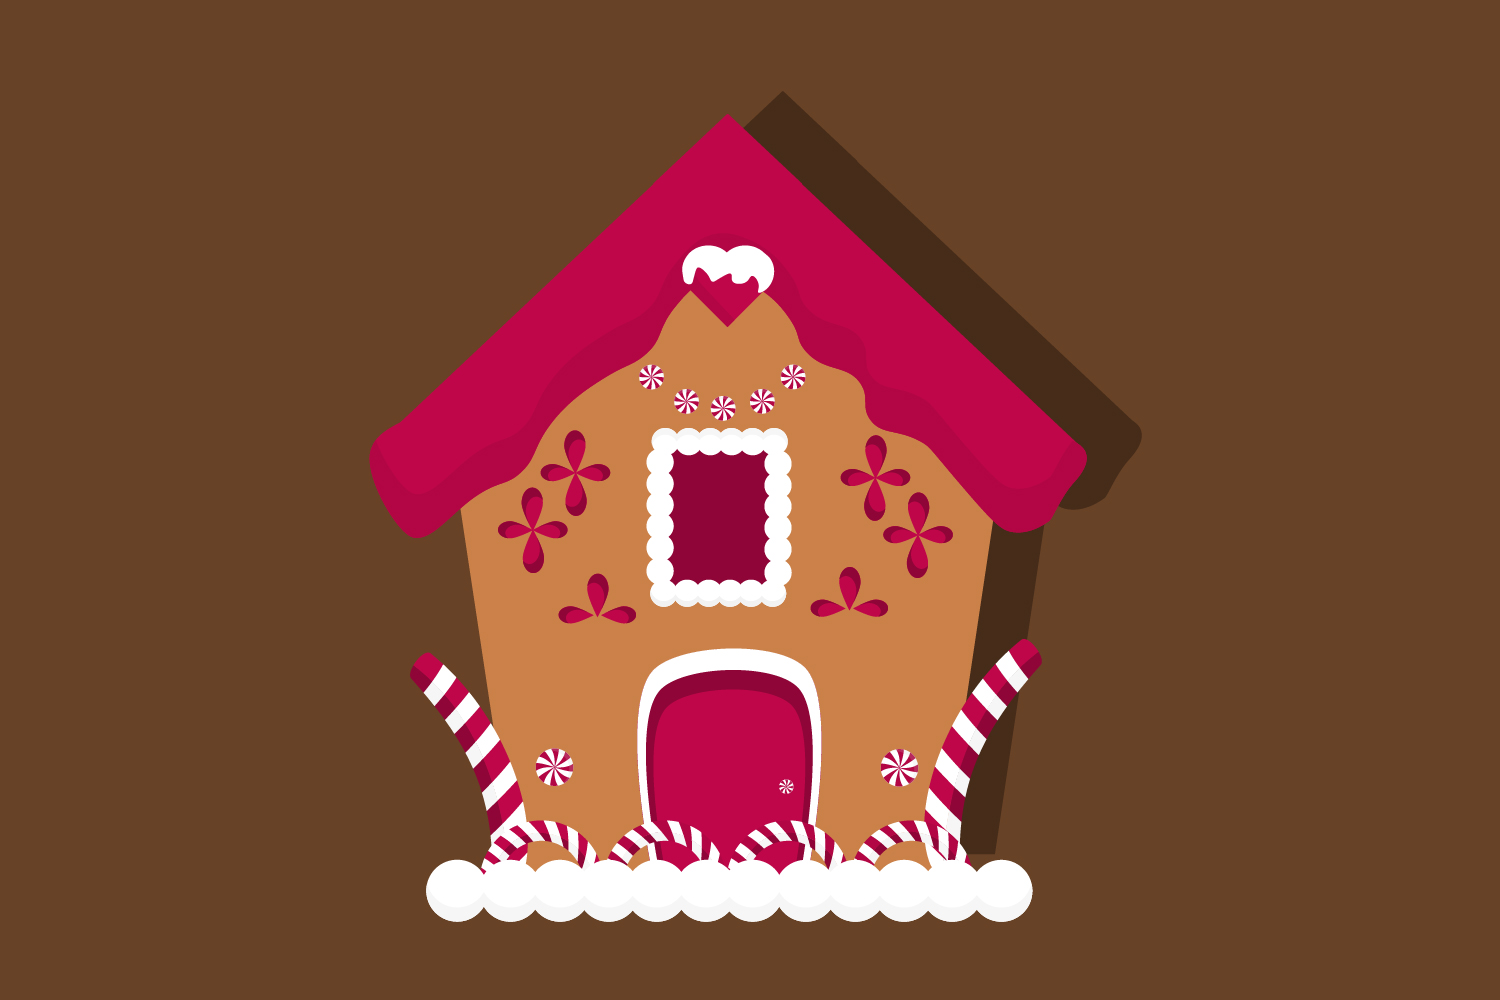 Christmas gingerbread house clipart, christmas example image 2